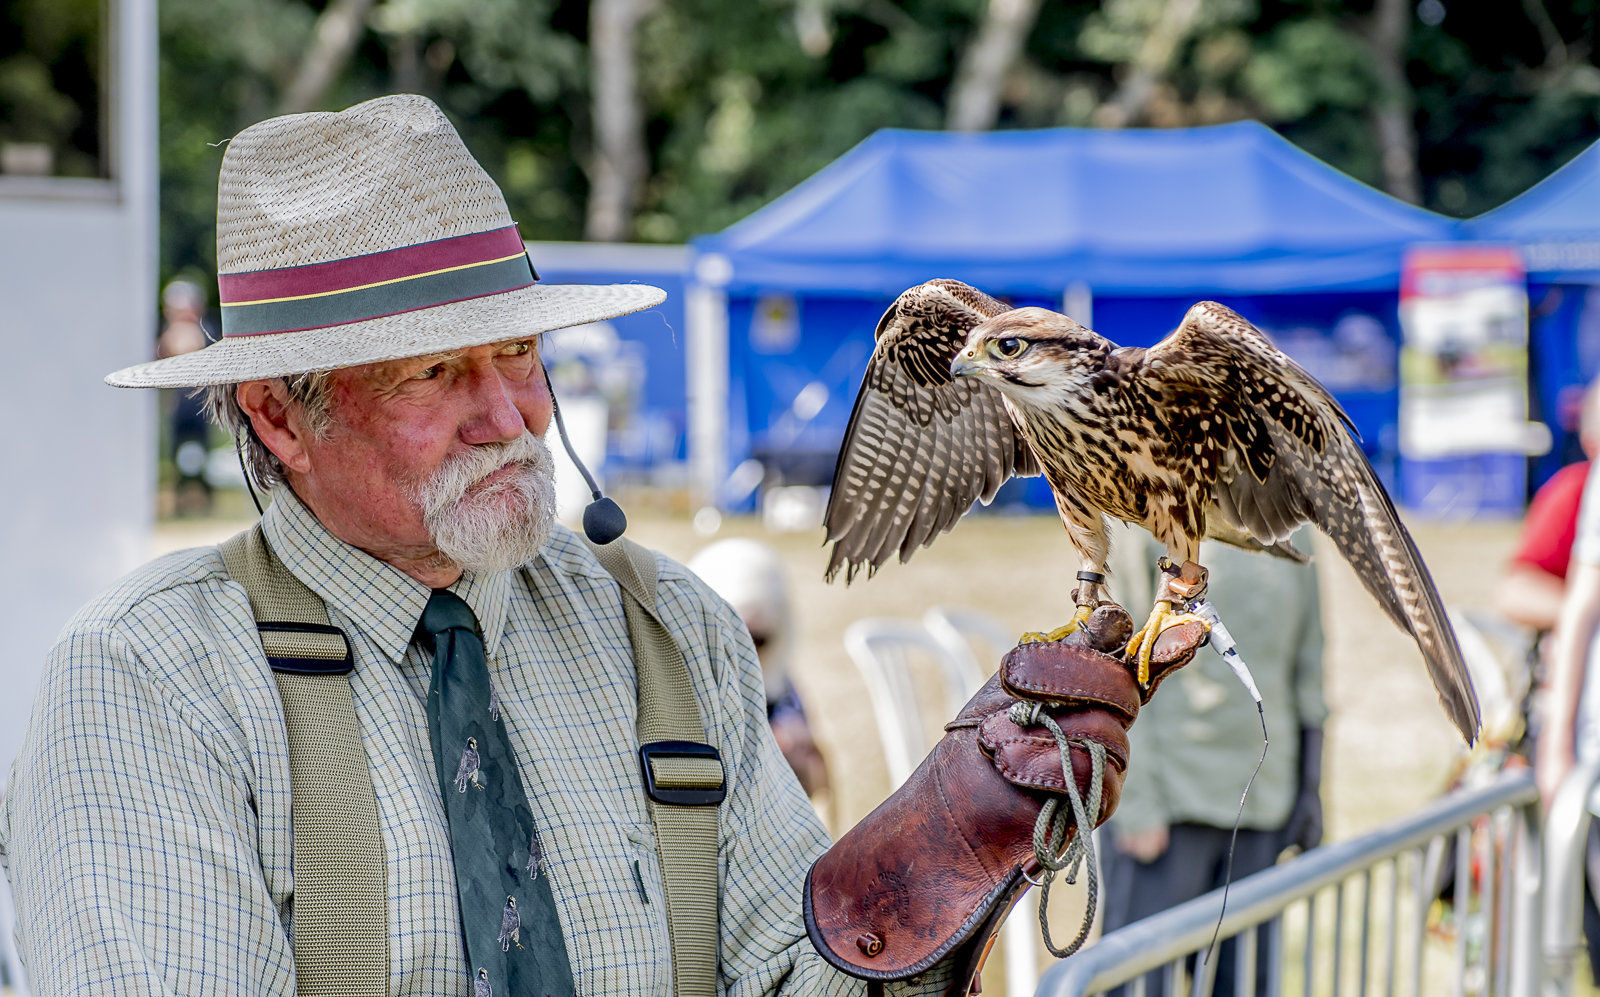 Bird of Prey with handler